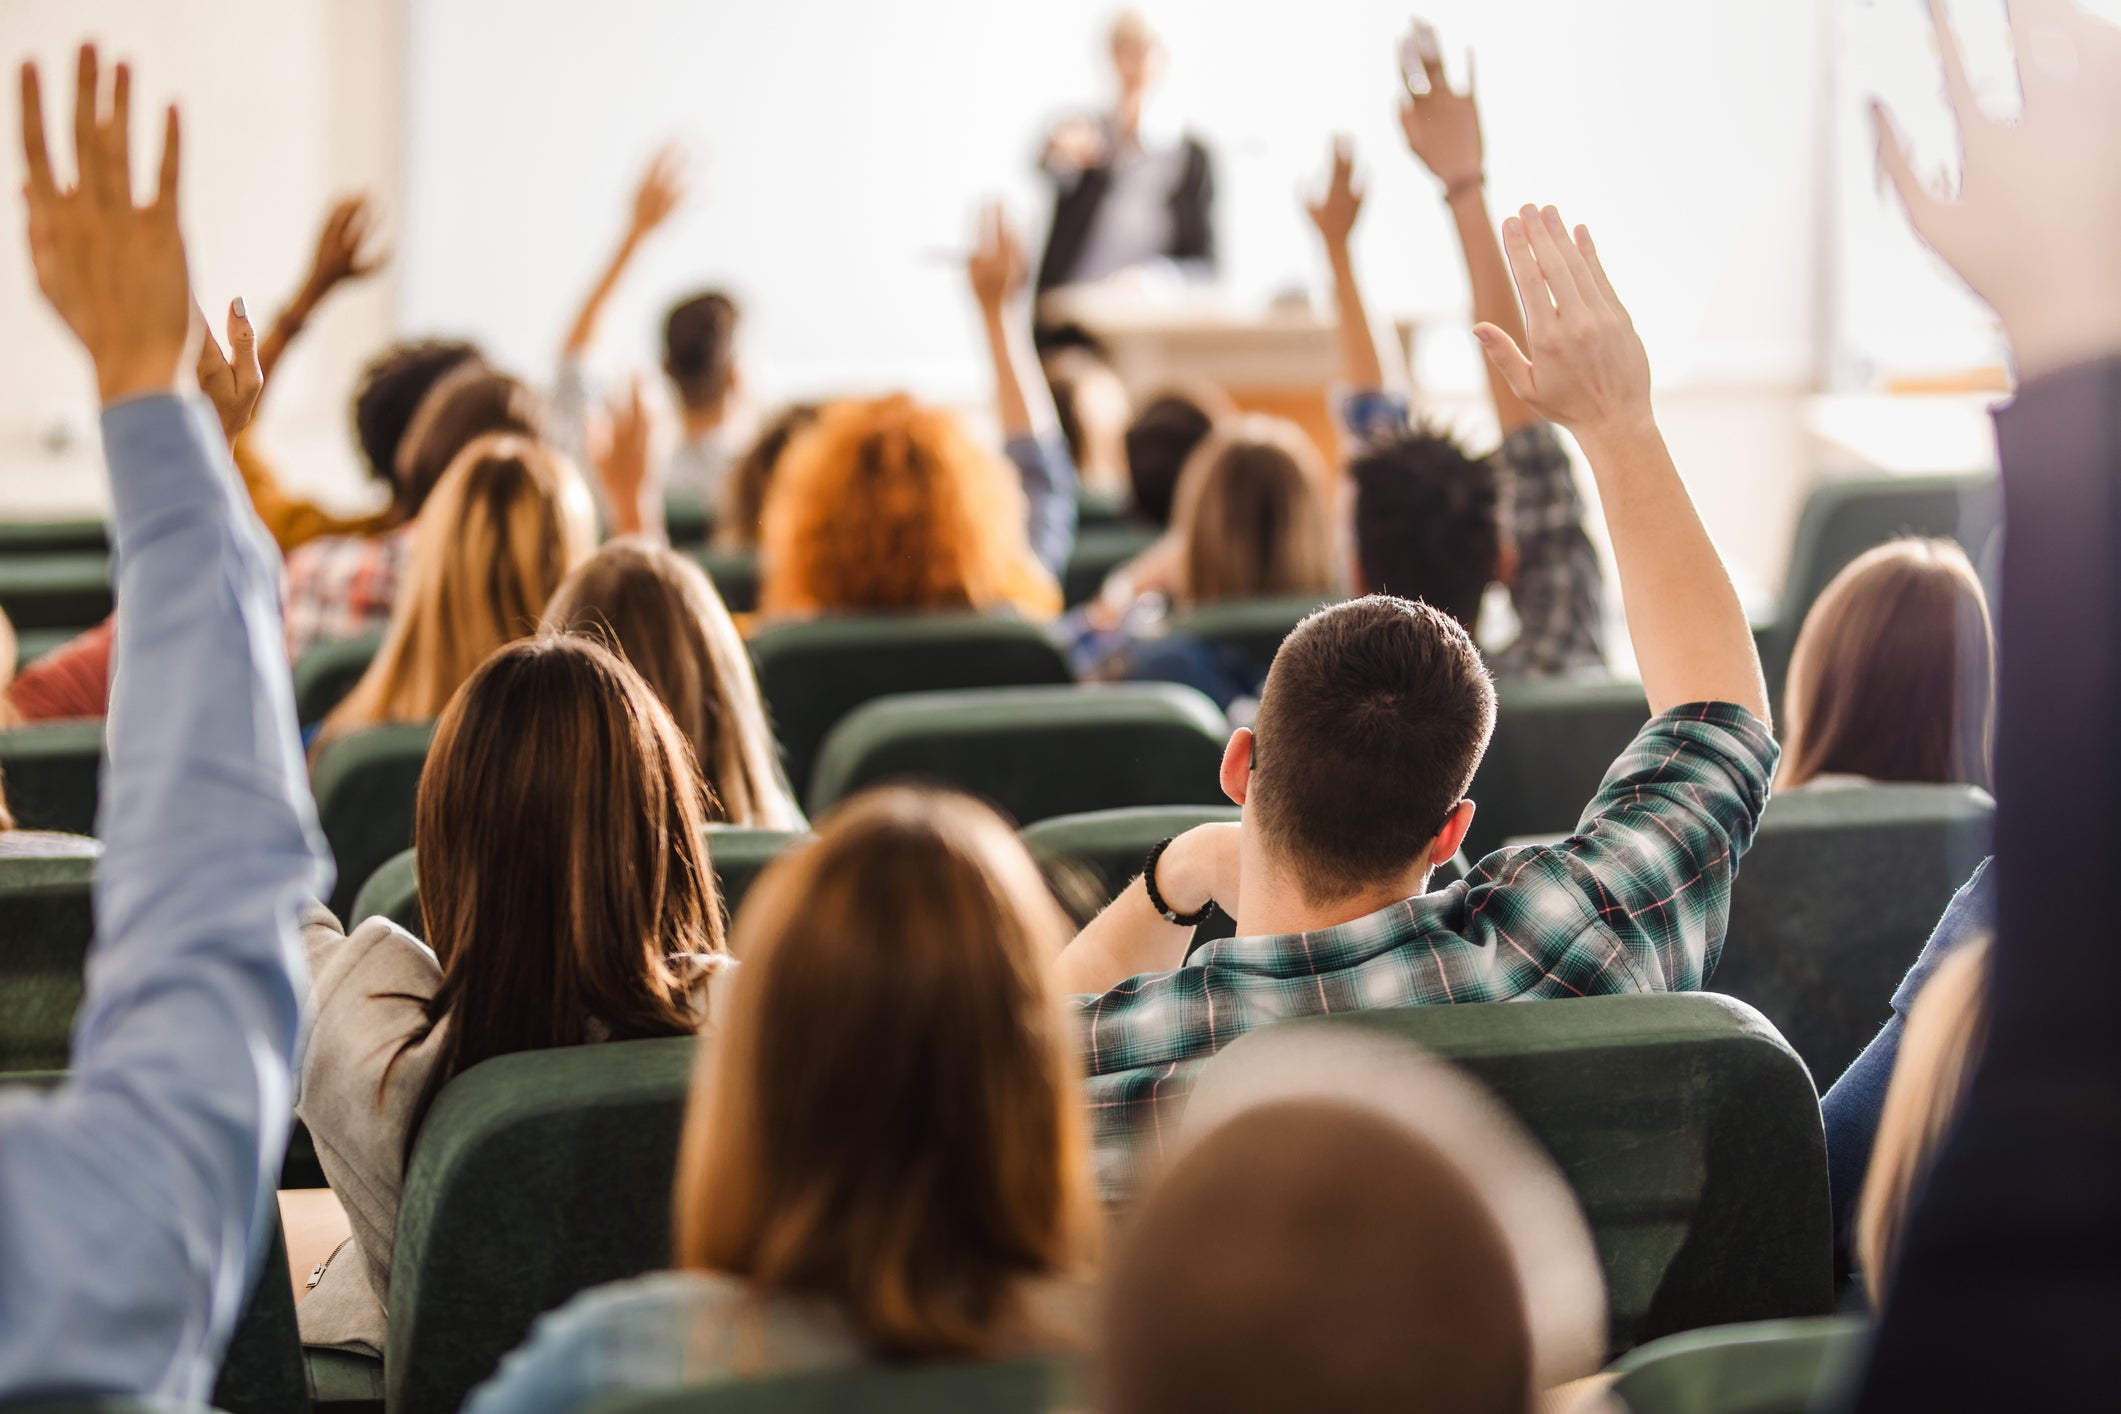 A lecture hall full of college students raising their hands while the professor speaks.